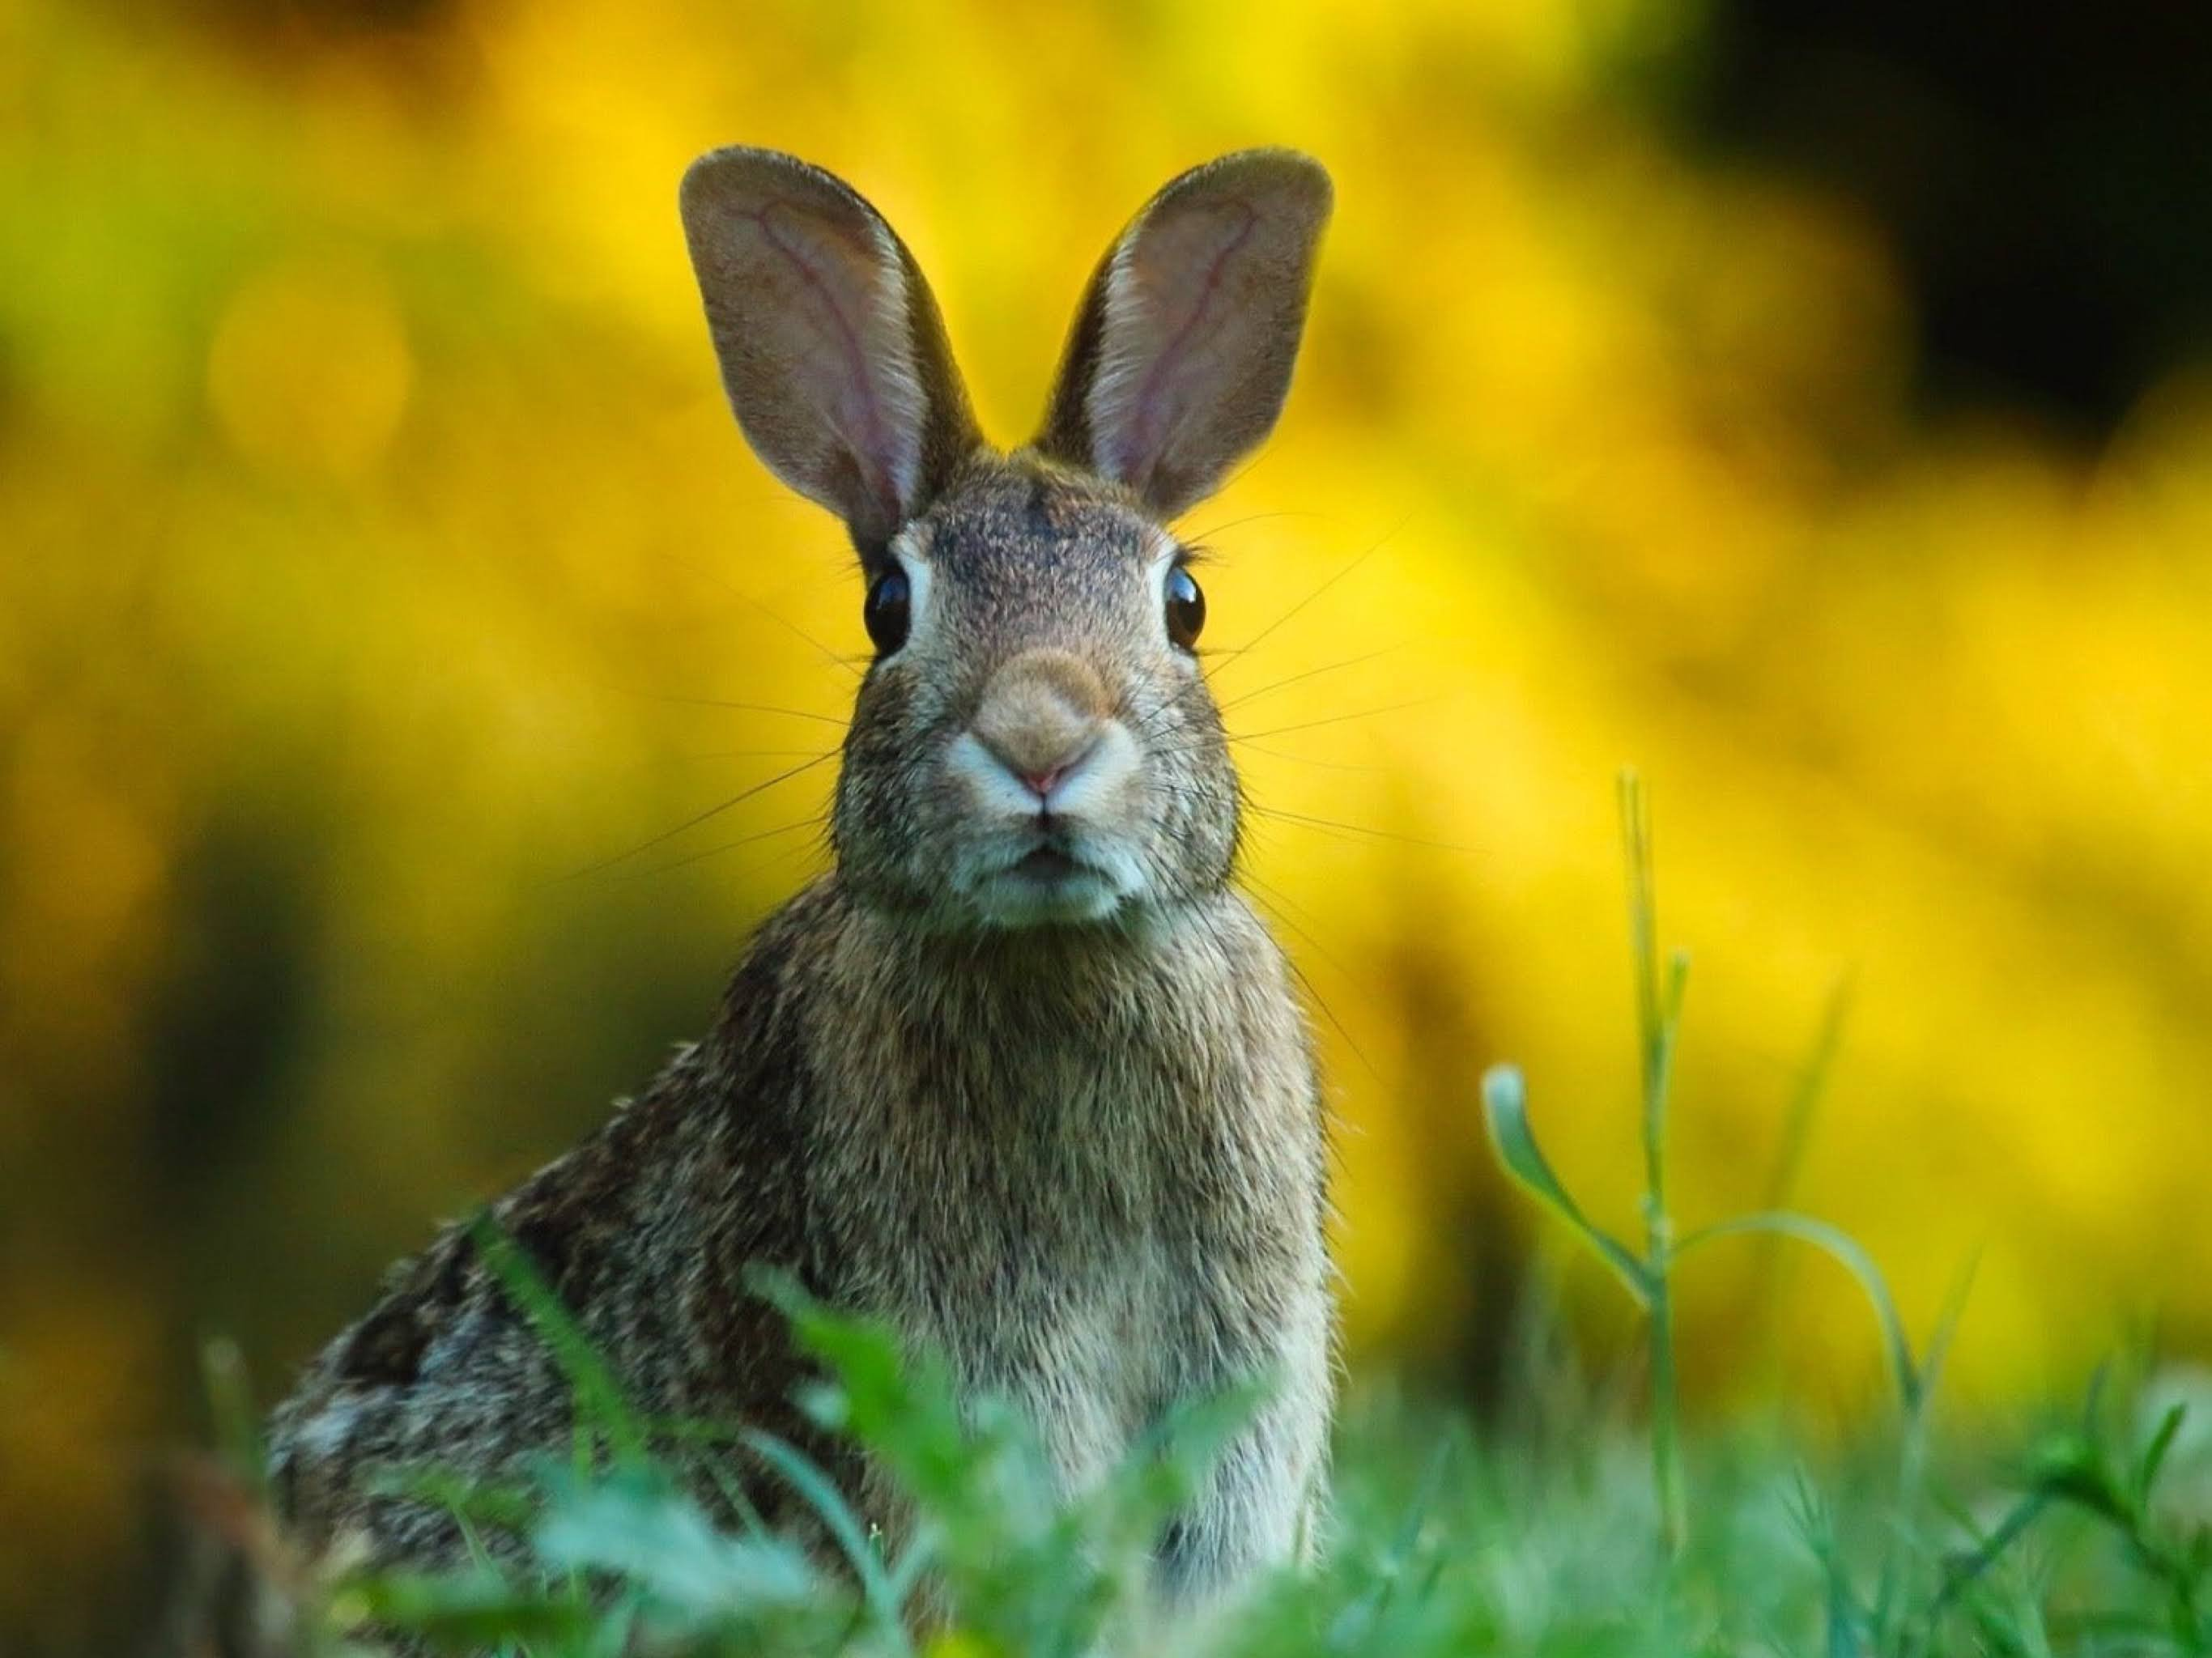 Spring rabbit sitting in a green field, the background are blurred yellow flowers